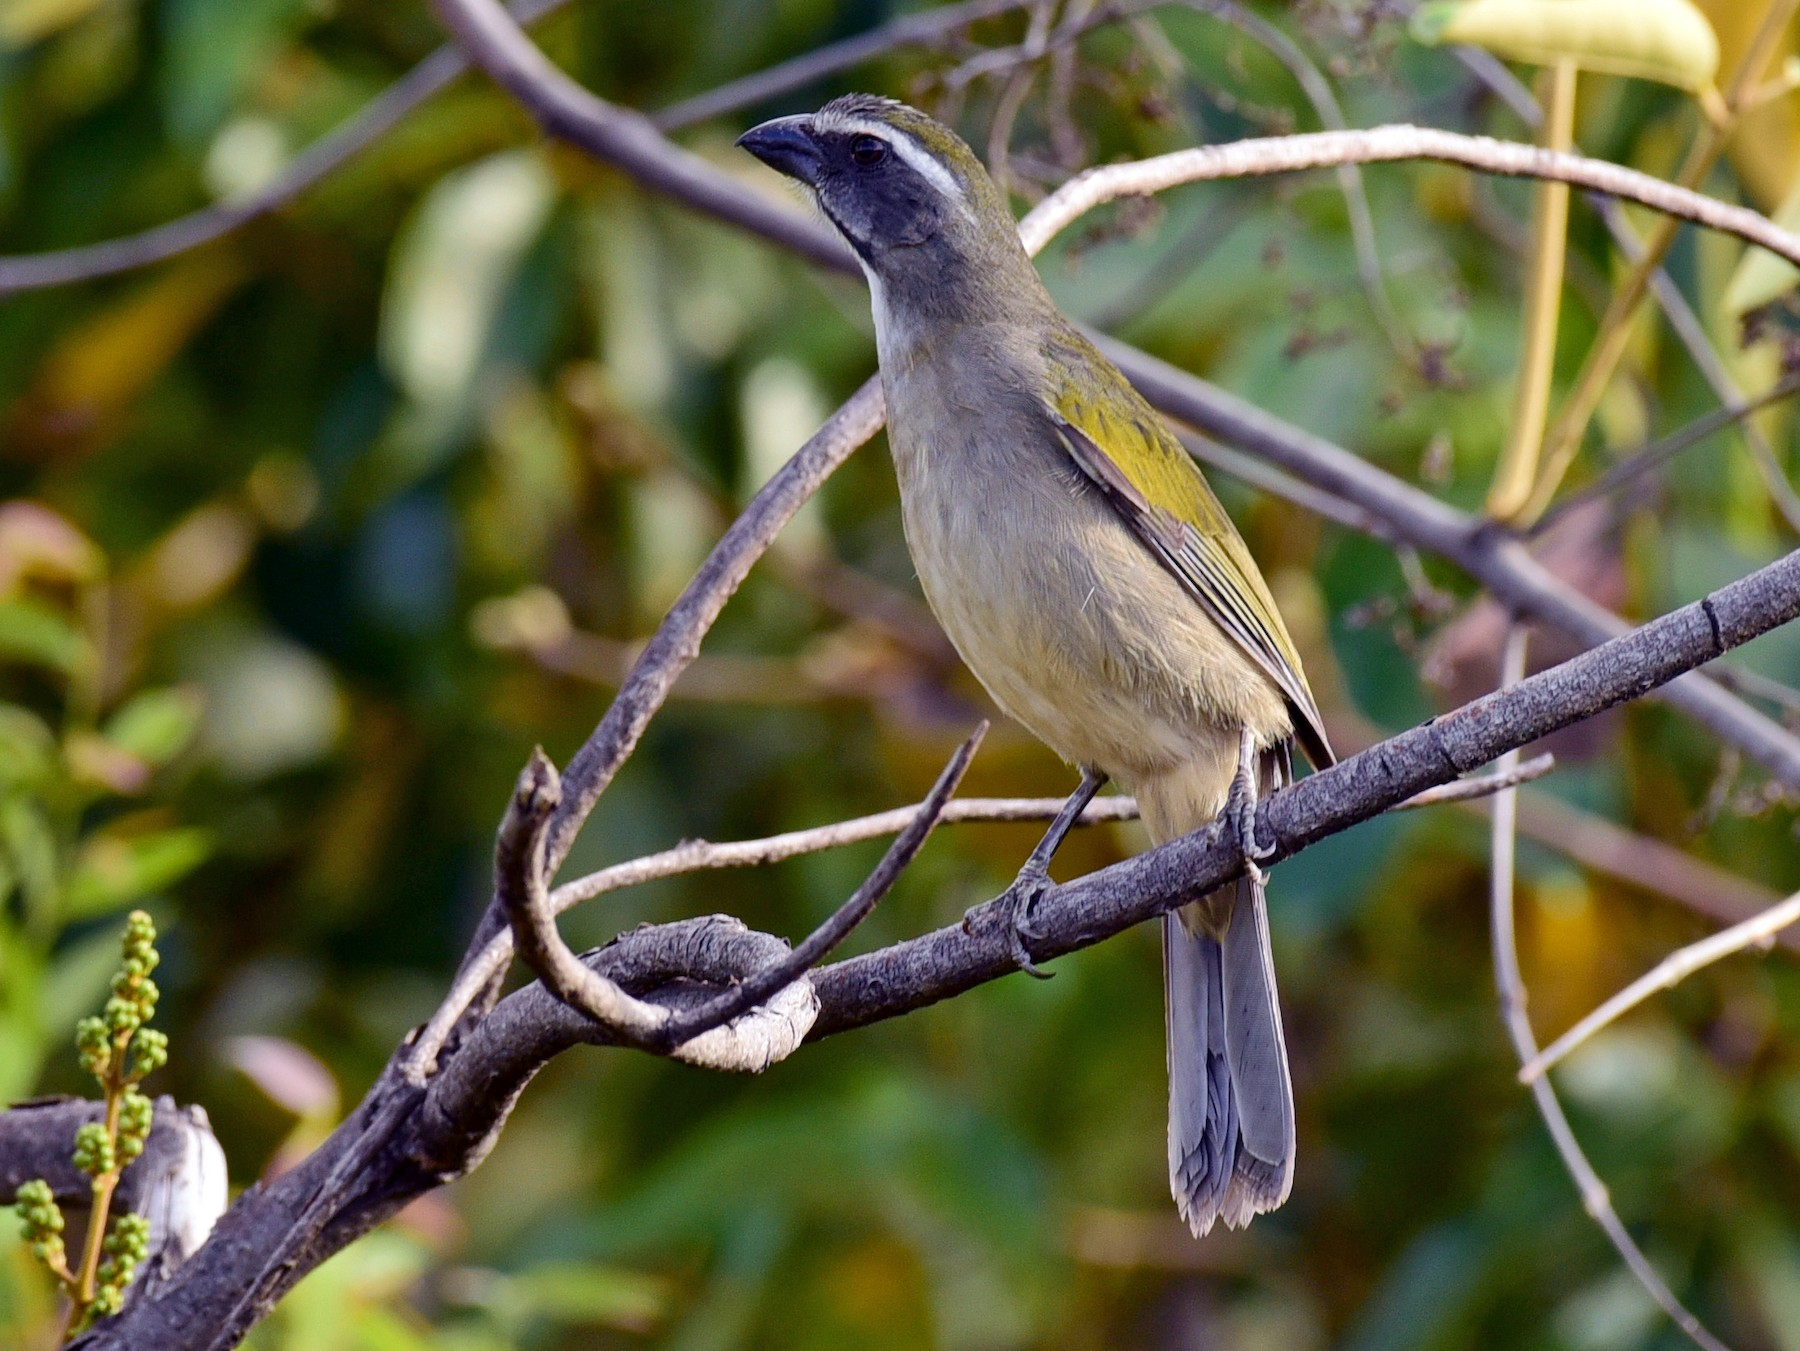 Green-winged Saltator - Luiz Moschini